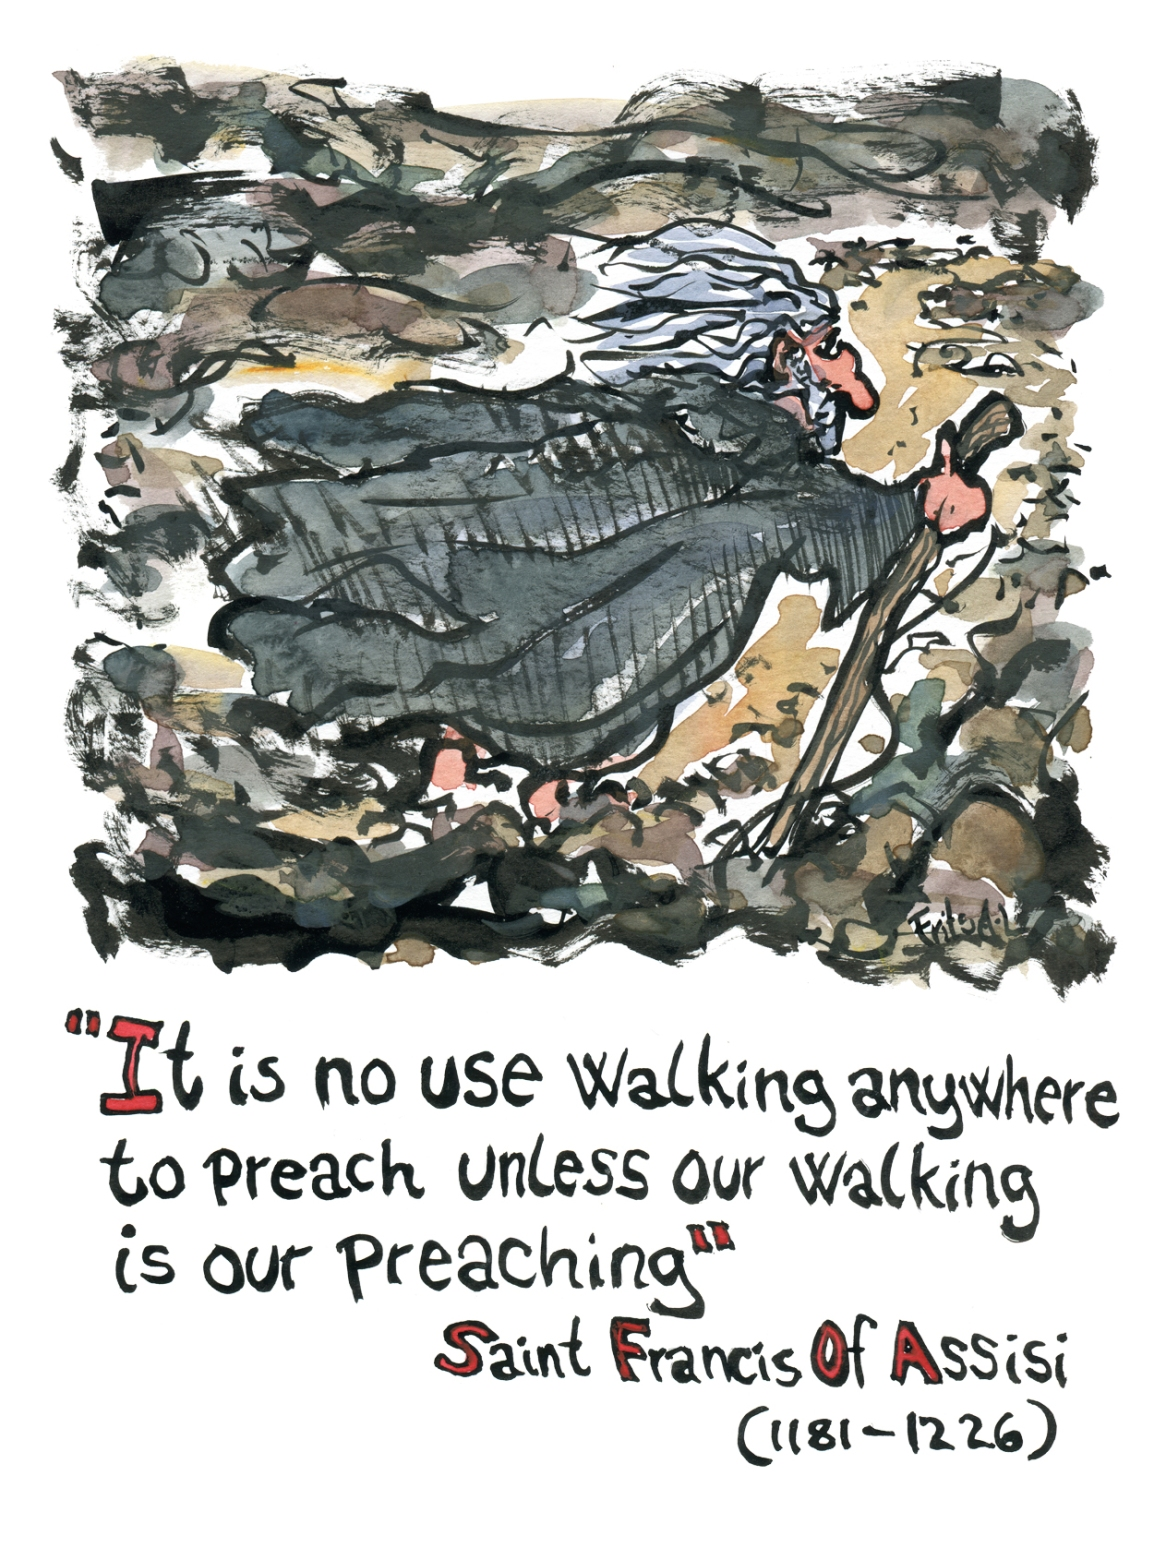 It is no use walking anywhere quote from Francis Assisi